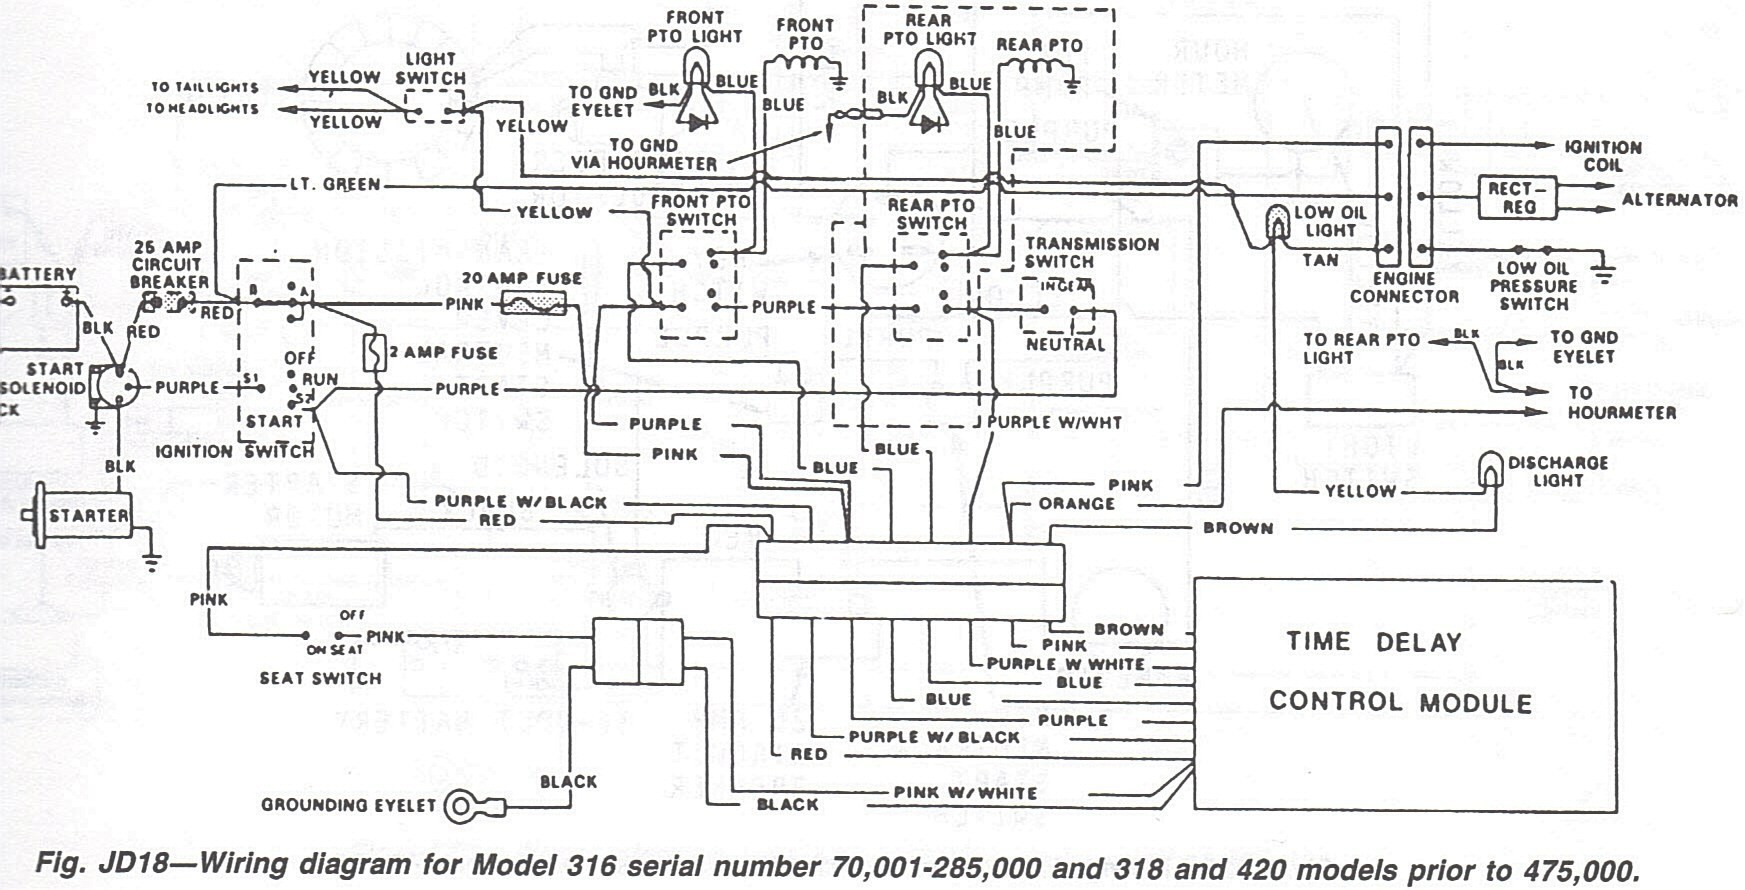 Genie Lift Wiring Diagram -356a Wiring Diagram | Begeboy Wiring Diagram  SourceBegeboy Wiring Diagram Source